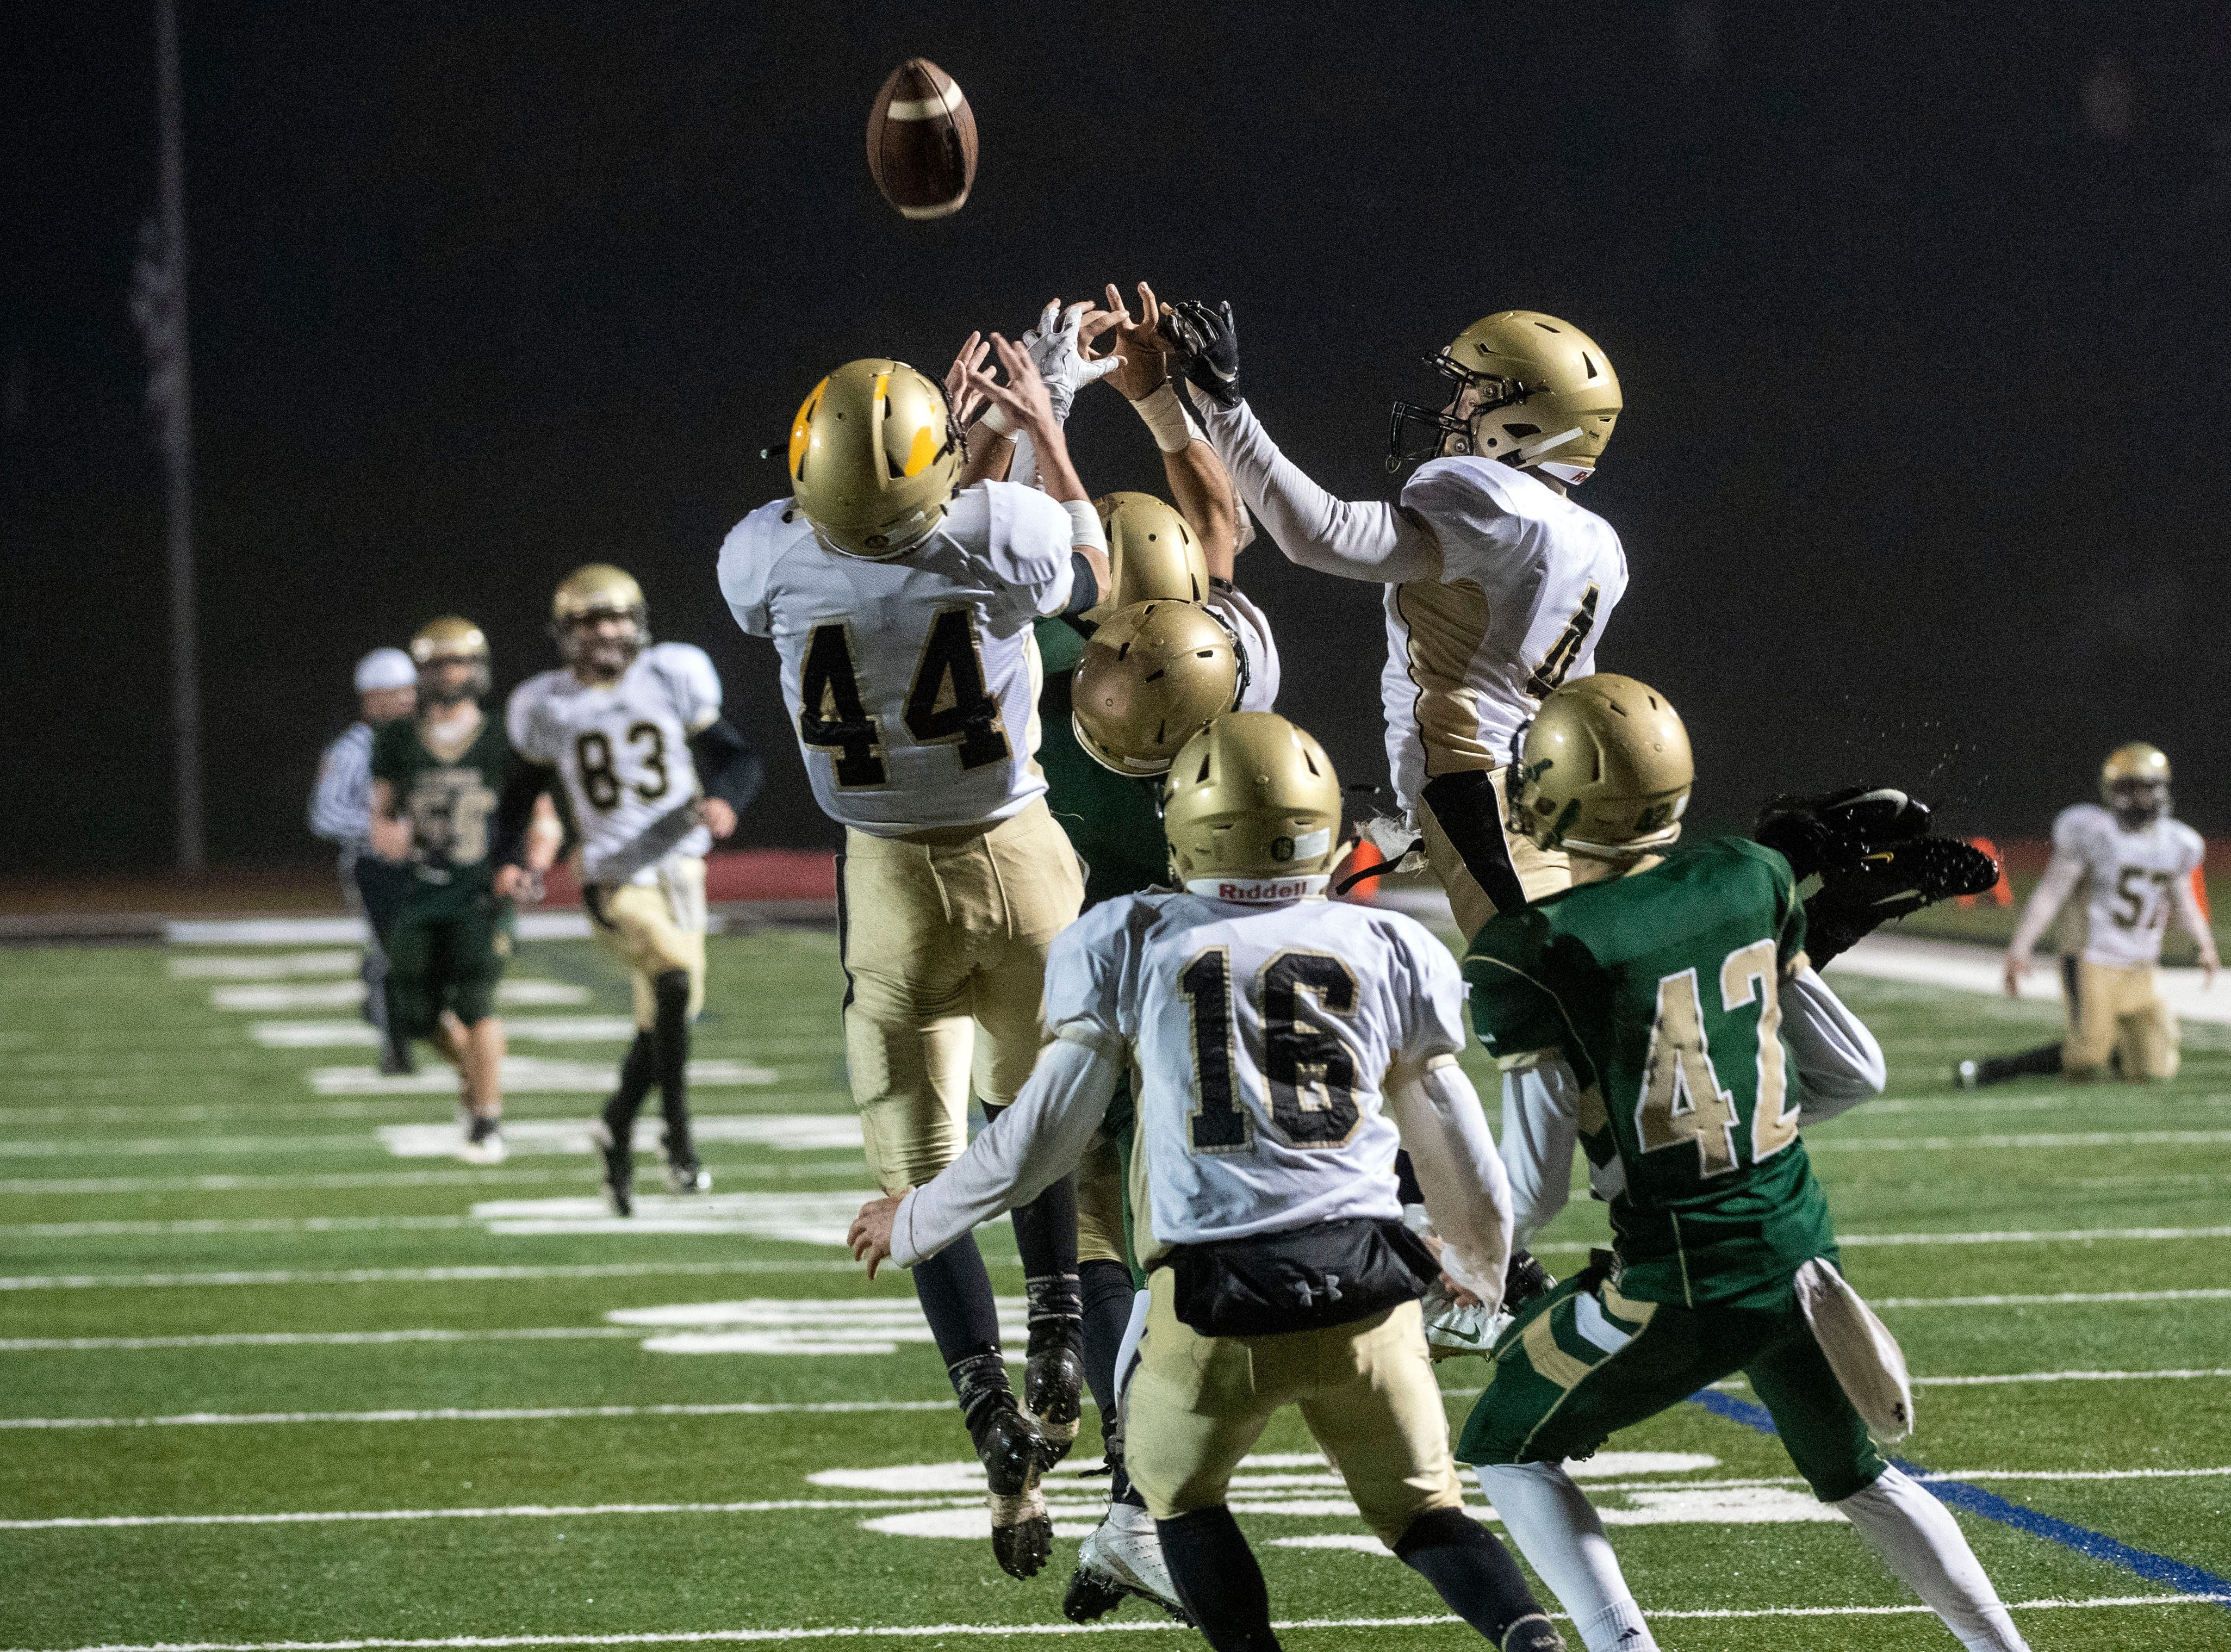 Delone and York Catholic players leap into the air for a York Catholic Hail Mary pass during the District III 2A championship game at South Western High School on Nov. 9, 2018. The York Catholic Fighting Irish beat the Delone Catholic Squires in overtime, 28-21.